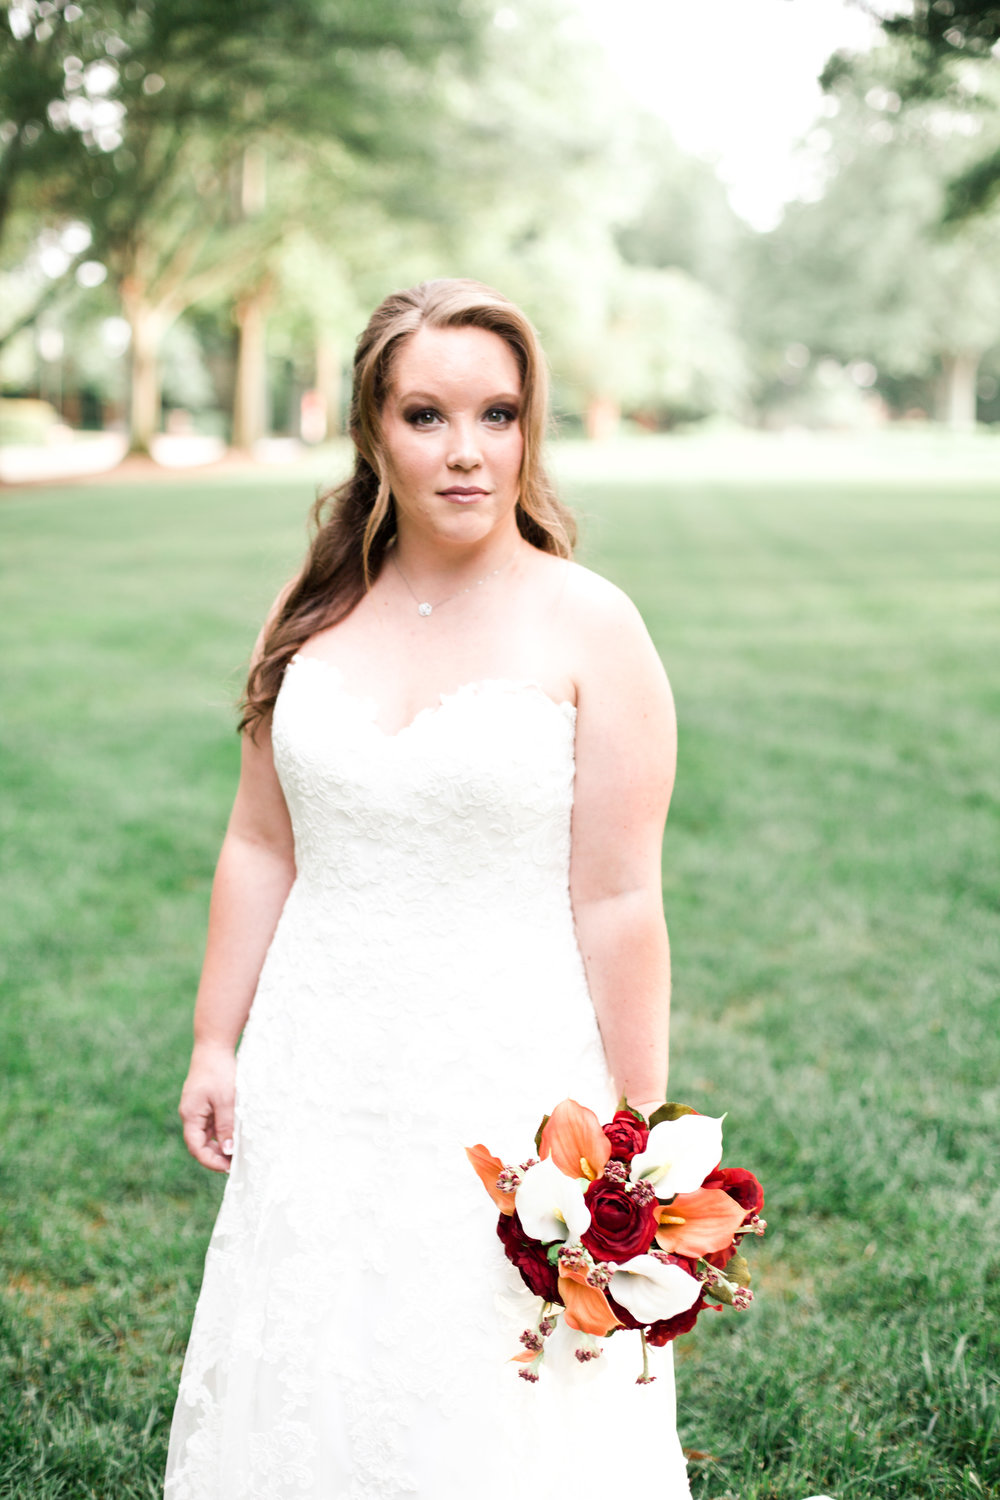 gabbie_bridal_poured_out_photography-48.jpg